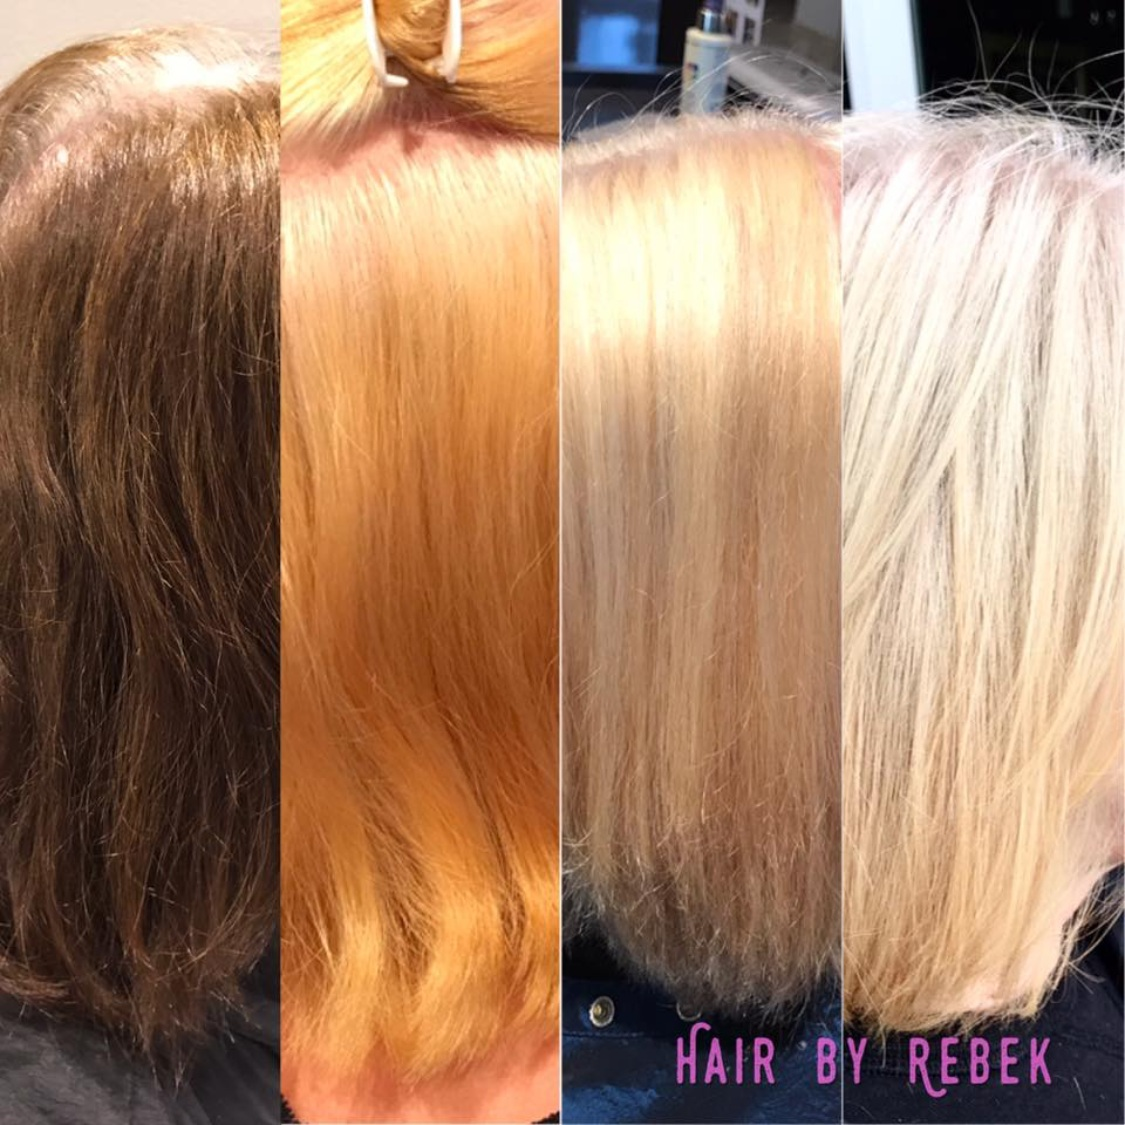 Rebecca Crosby Stylist Artistik Edge Hair Salon Lake Highlands Texas Hair Color.png